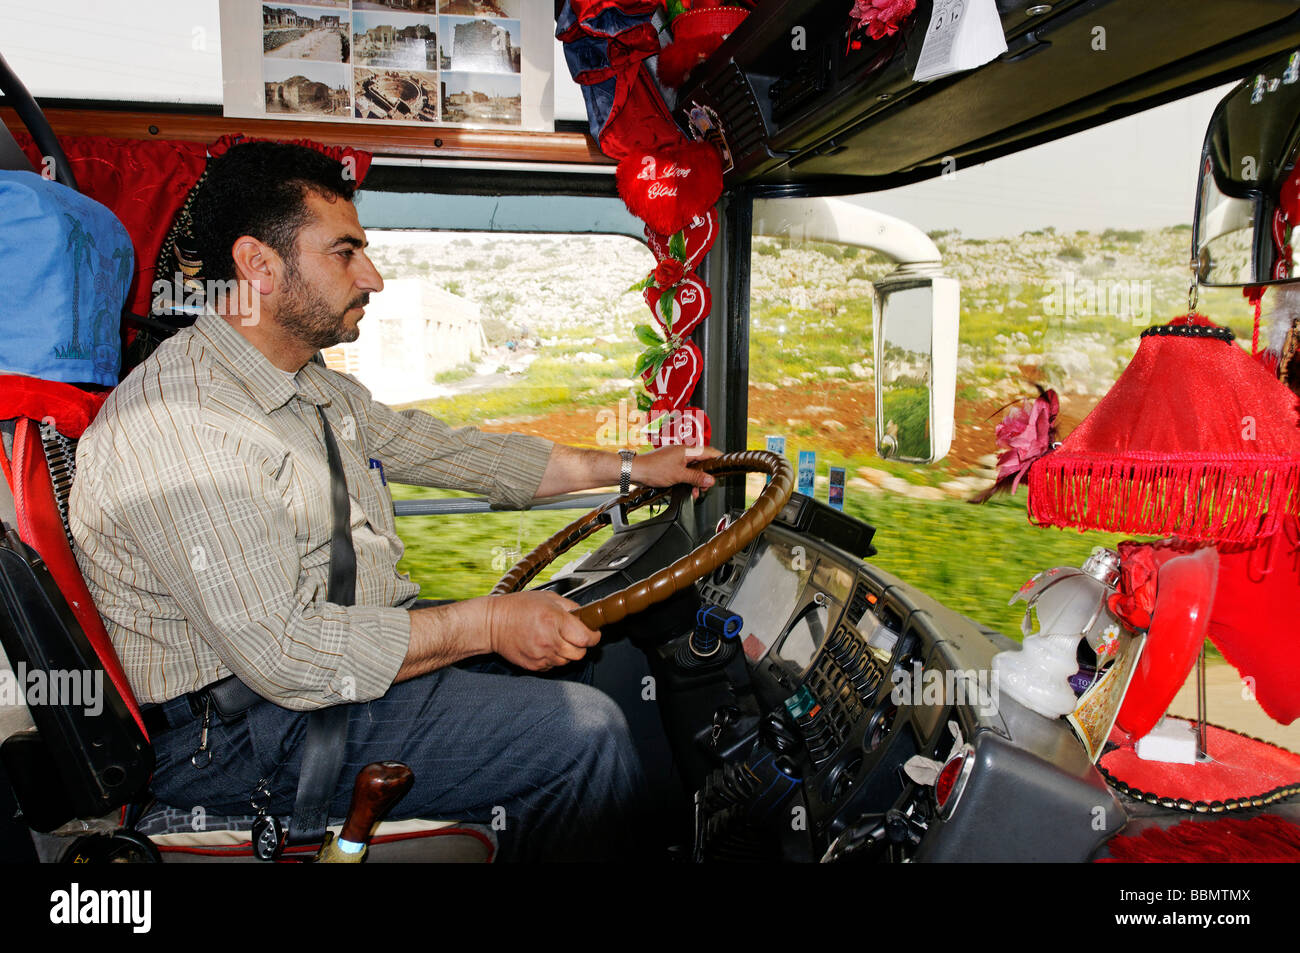 Bus driver in a decorated cab, Syria, Asia - Stock Image